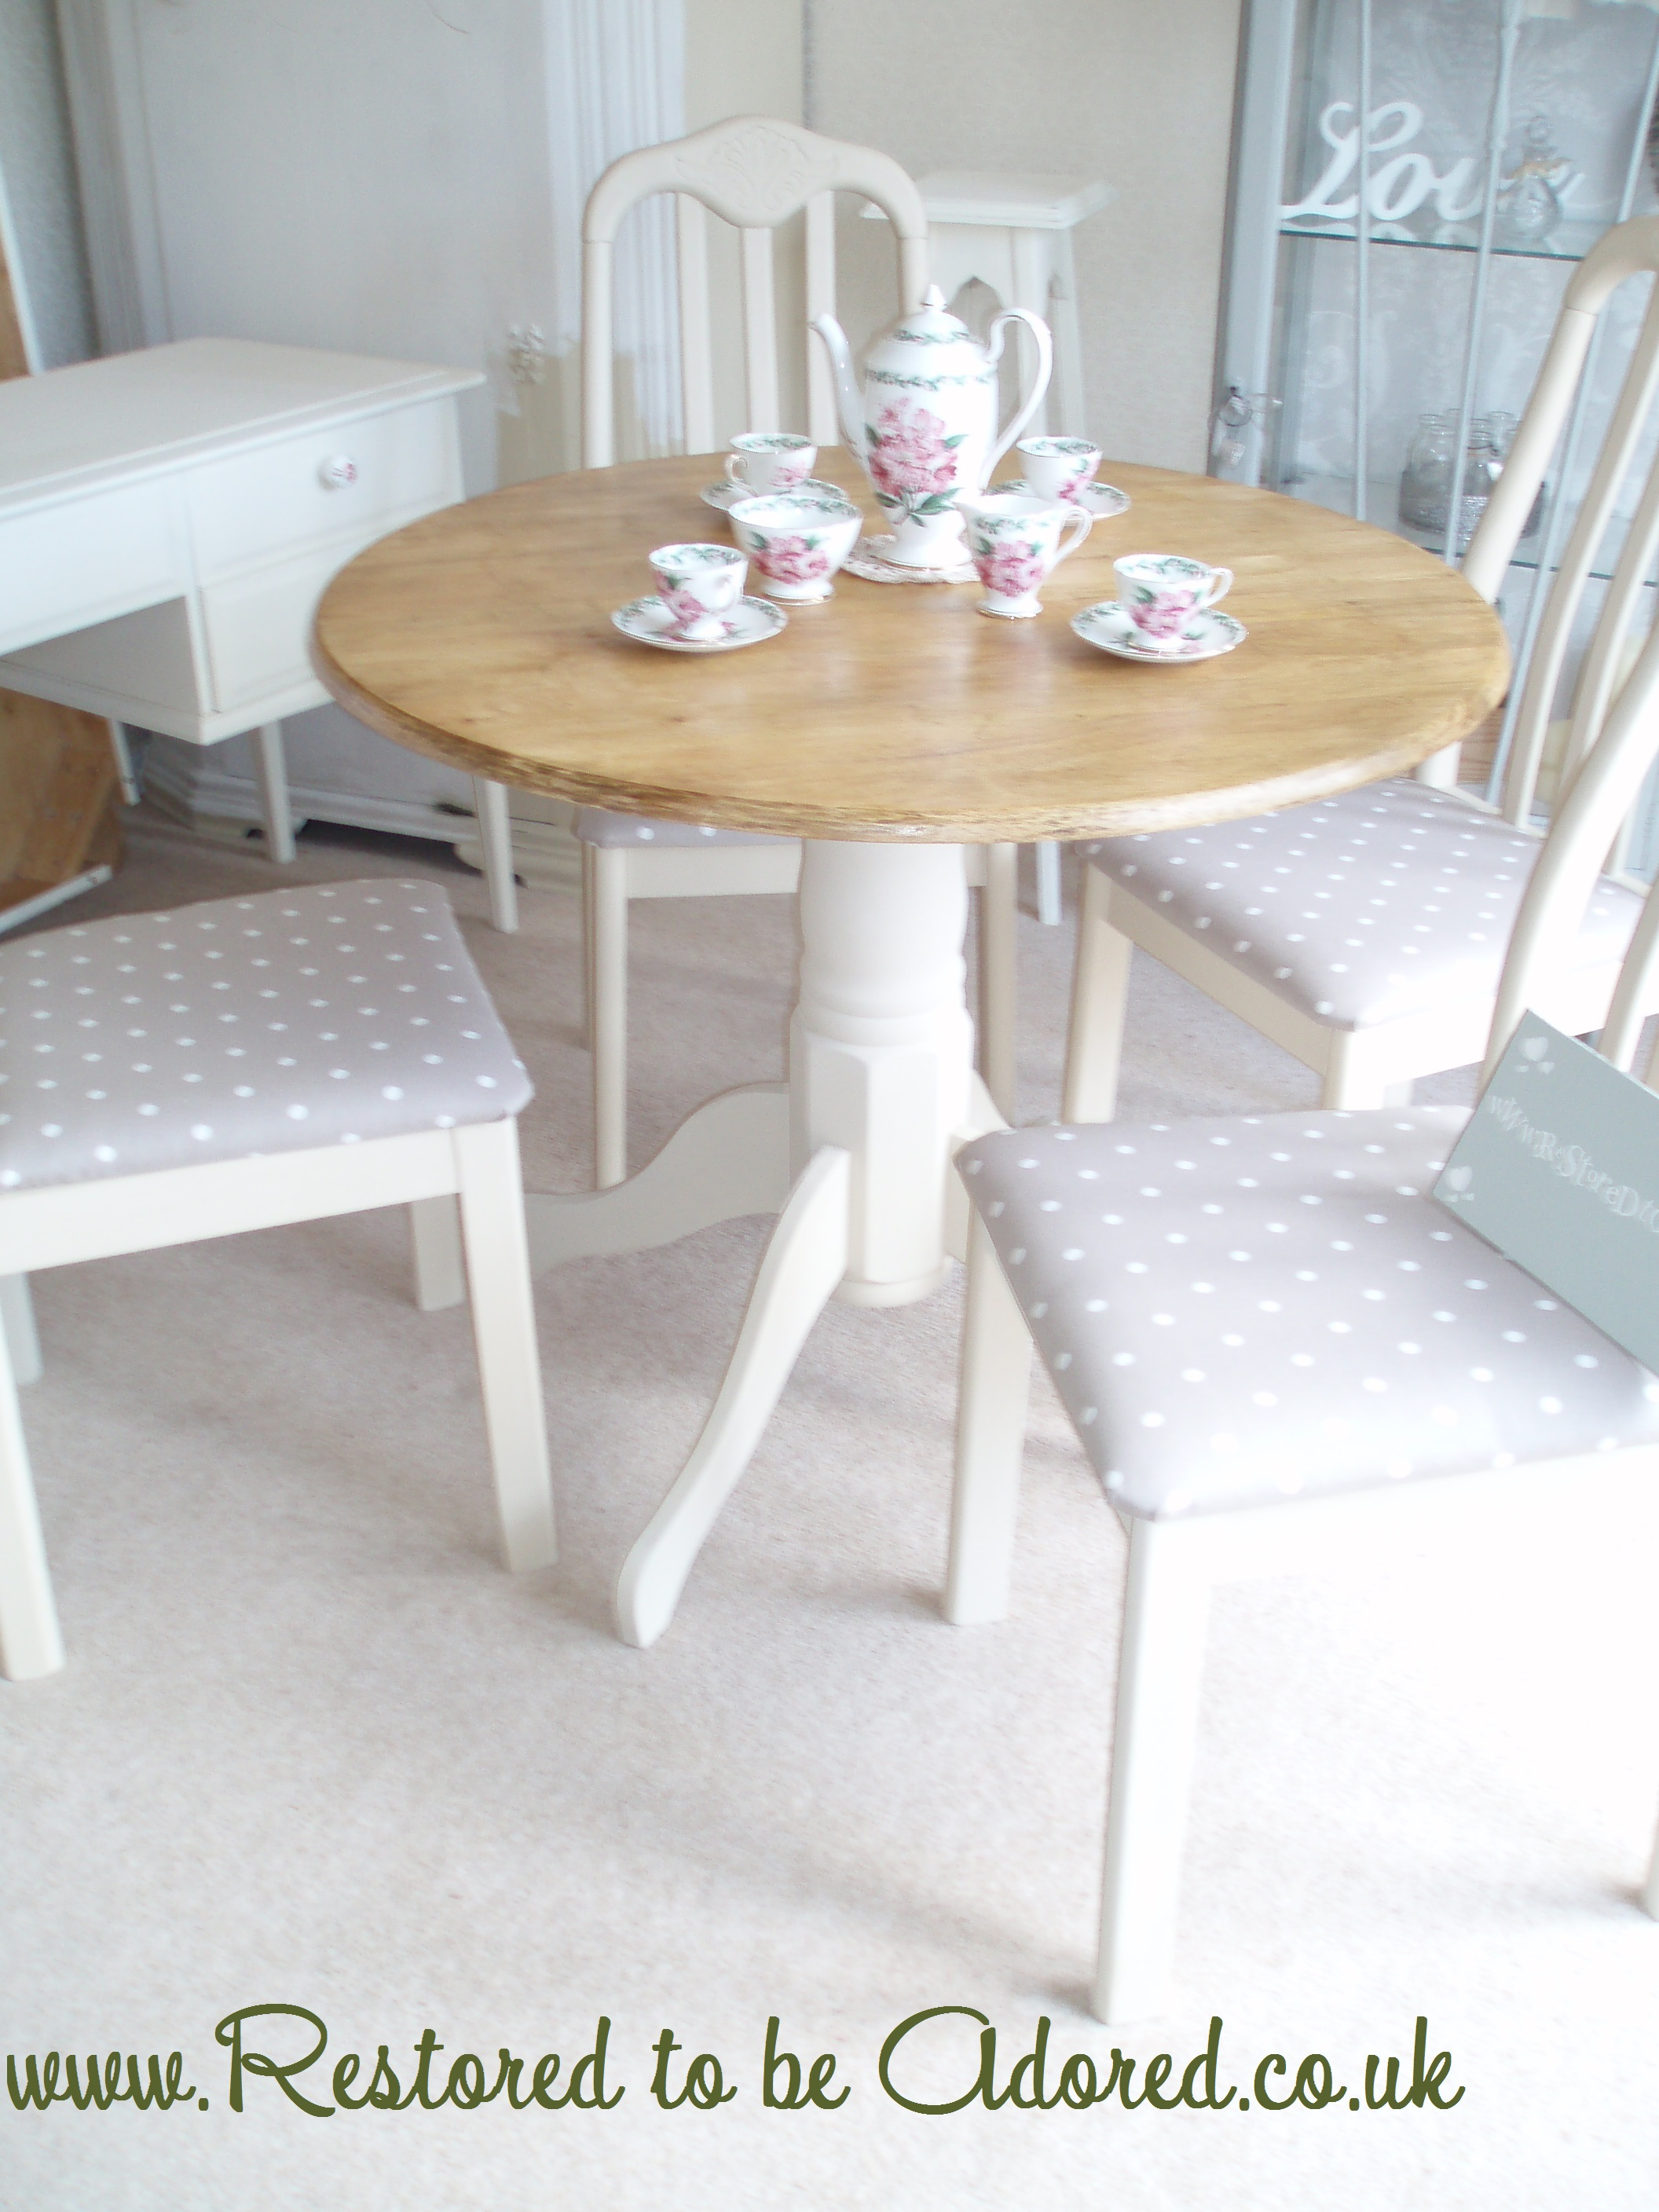 Shabby Chic Dining Table And Chairs Before And After Restored To Be Adored